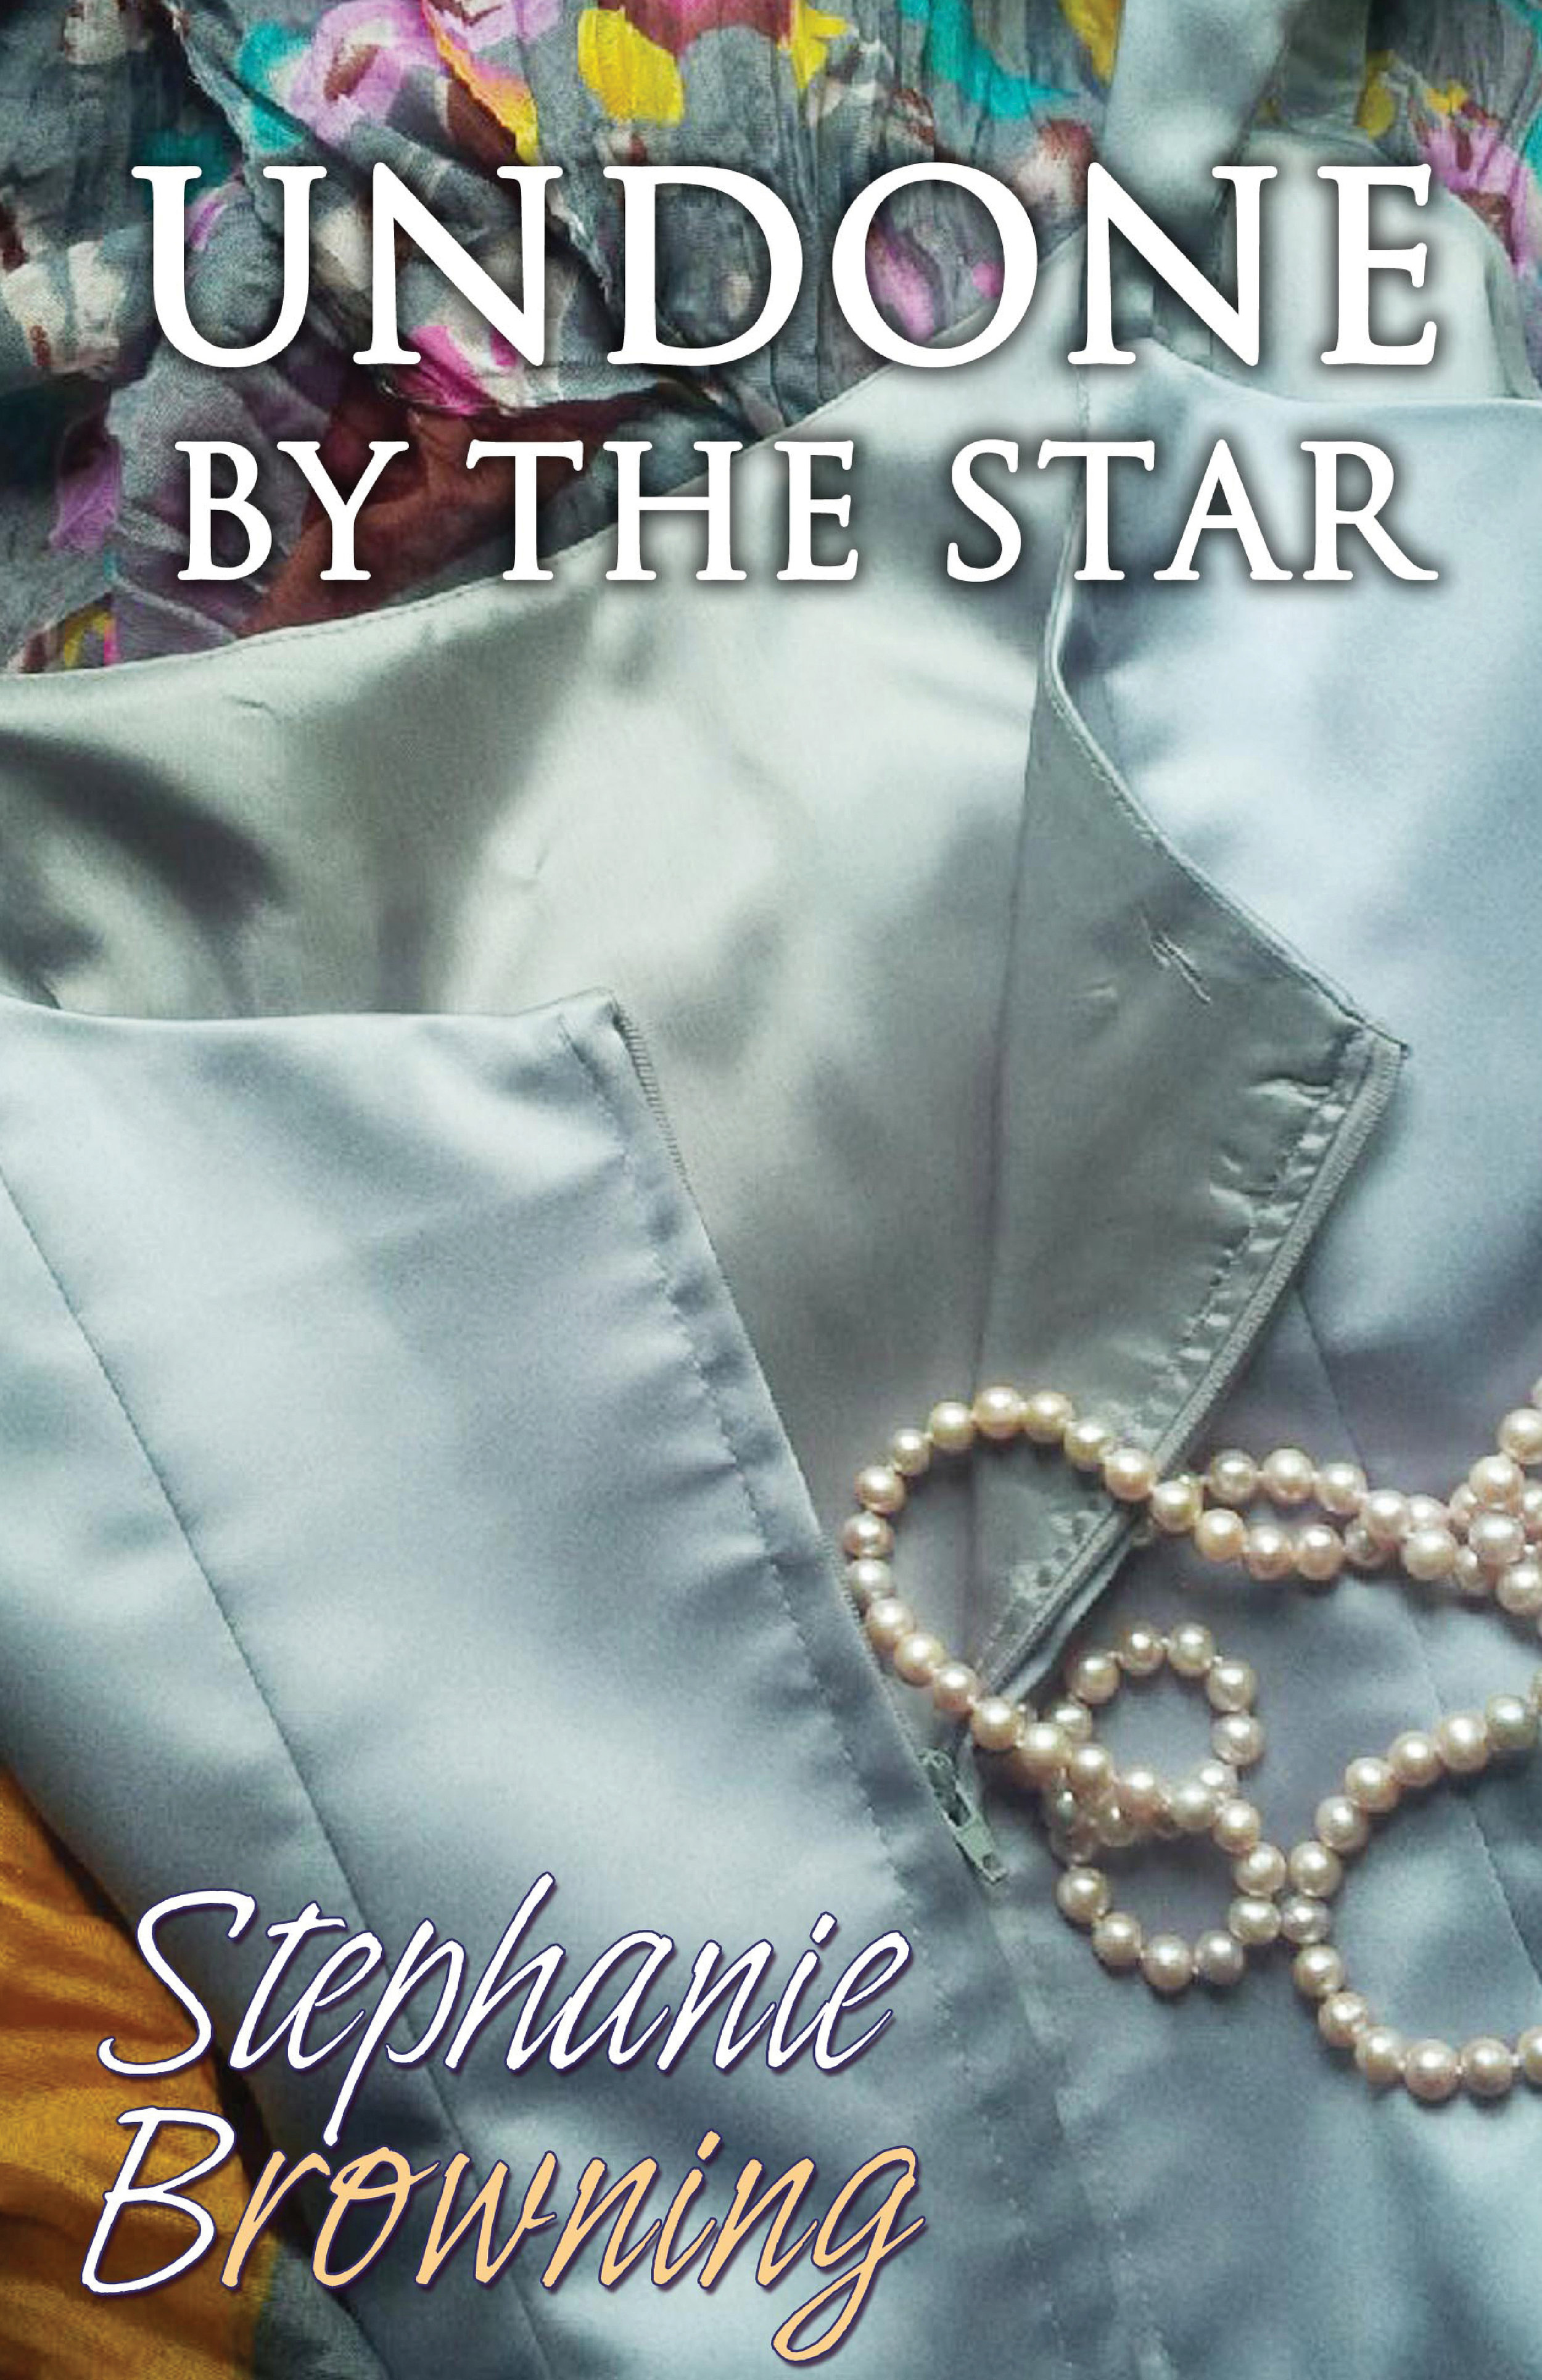 Undone by the Star    Available in  paperback ,  Kindle  and  Kobo .  Interior layout provided by Cover&Layout. Cover design provided by the author.